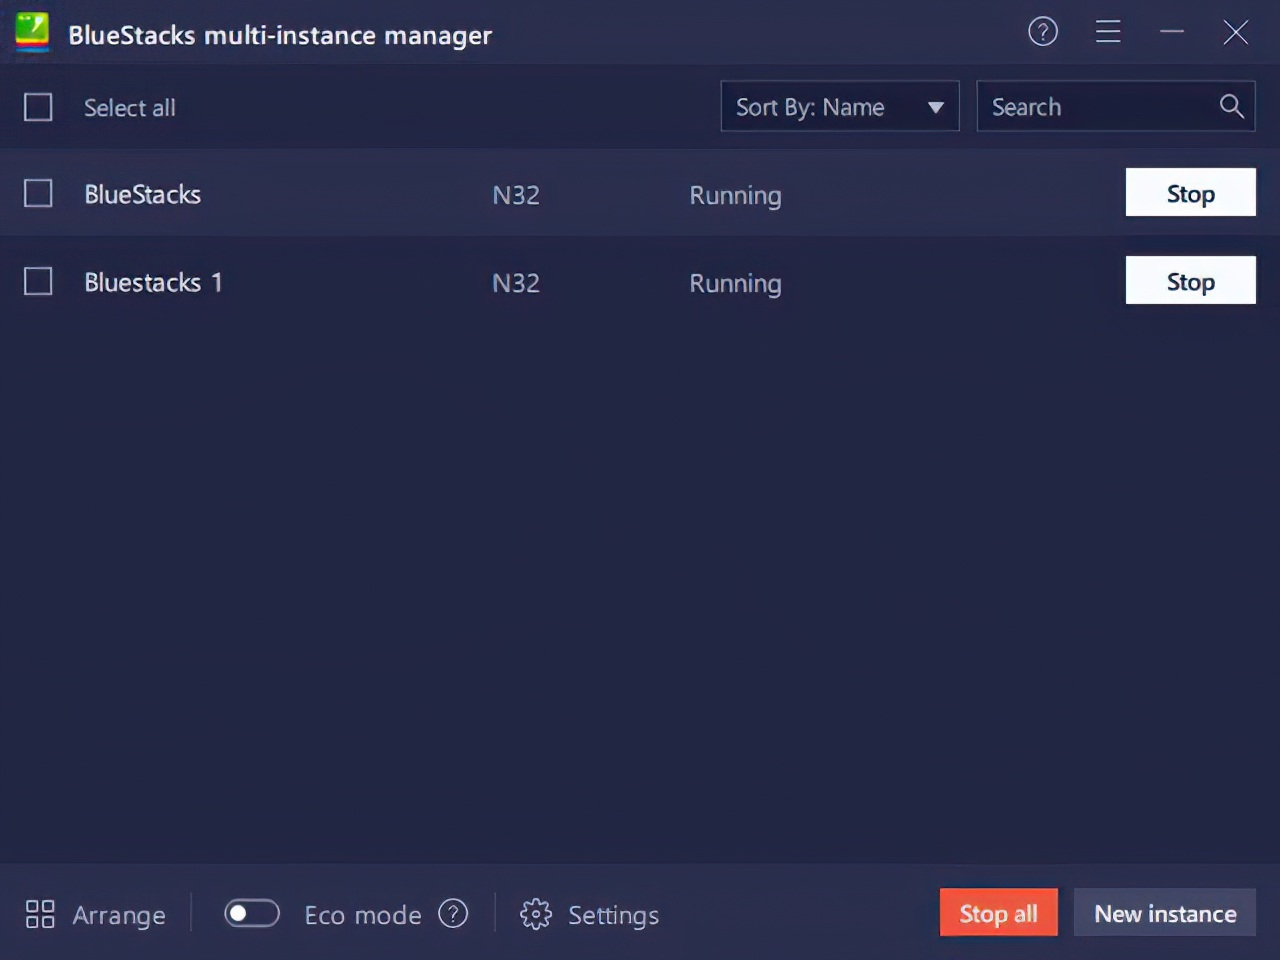 BlueStacks 5 – The New and Improved Multi-Instance Tool